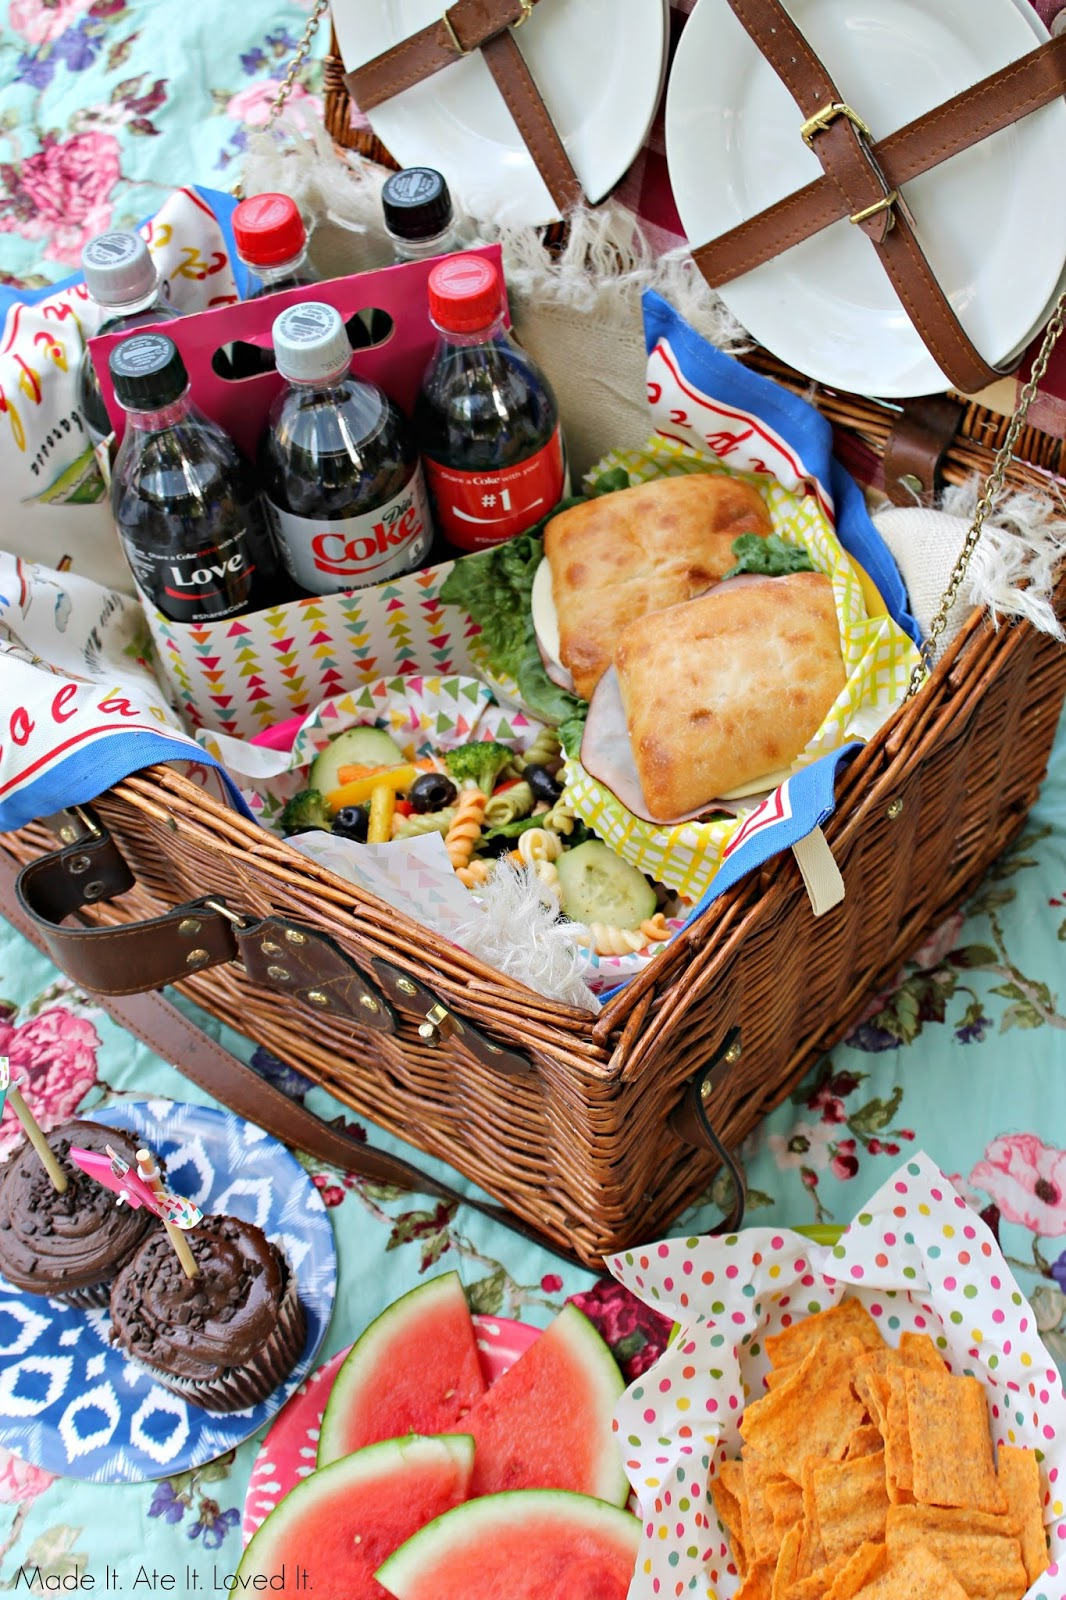 Best Picnic Basket For 2 : Made it ate loved what are the best things to